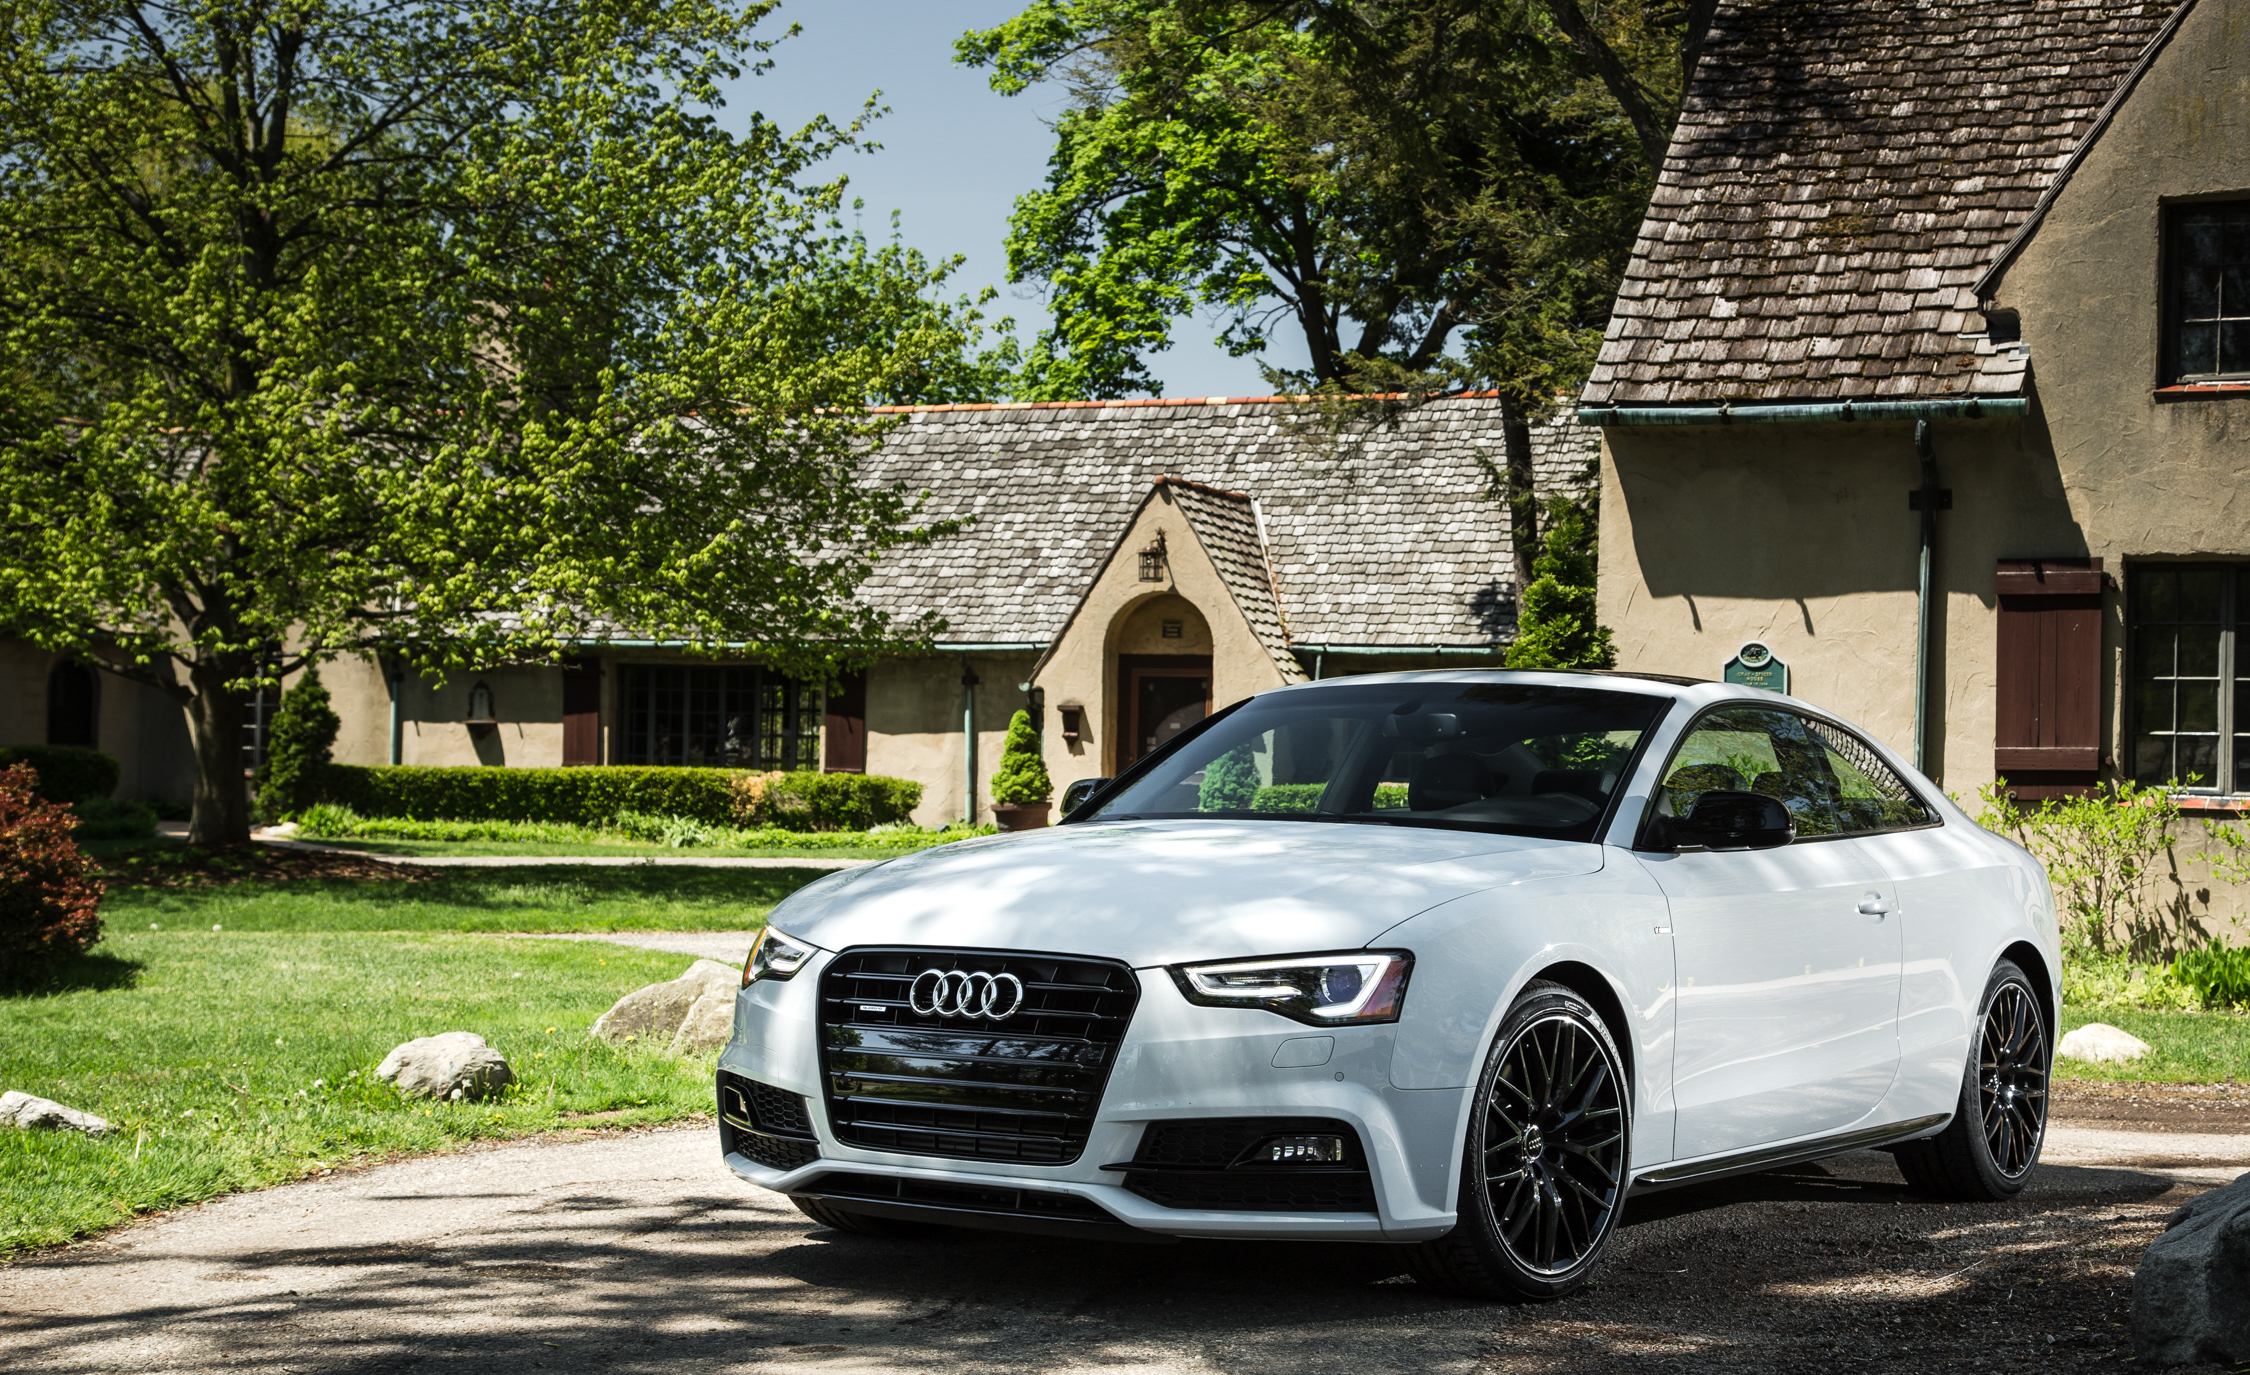 2016 Audi A5 S Line (View 1 of 22)